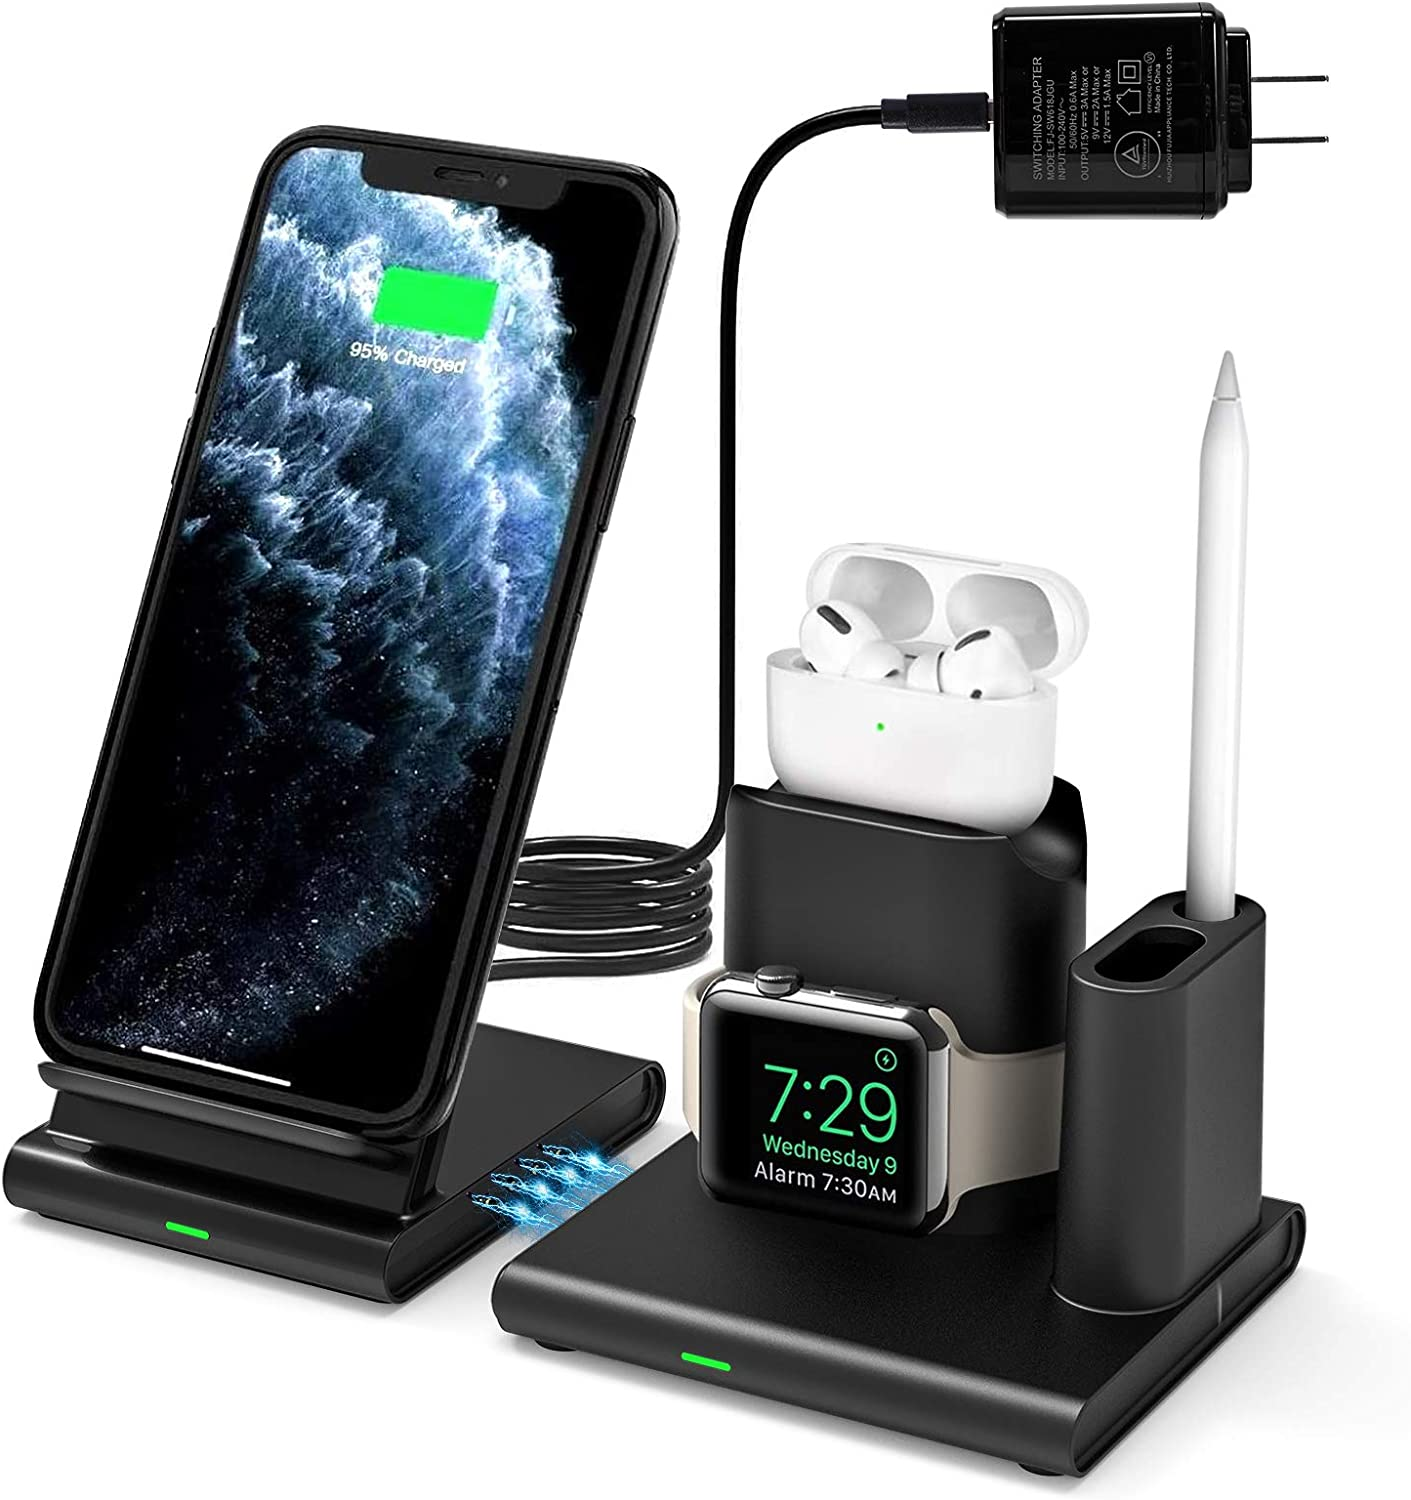 Wireless Charger, WisFox 4 in 1 Qi-Enabled Fast Charging Station Stand Compatible iWatch Airpods 1/2/Pro Air Pencil, iPhone 11/11 Pro/11Pro Max/X/XS/XR/Xs Max/8/8 Plus/Samsung Galaxy Note10/S10/S20